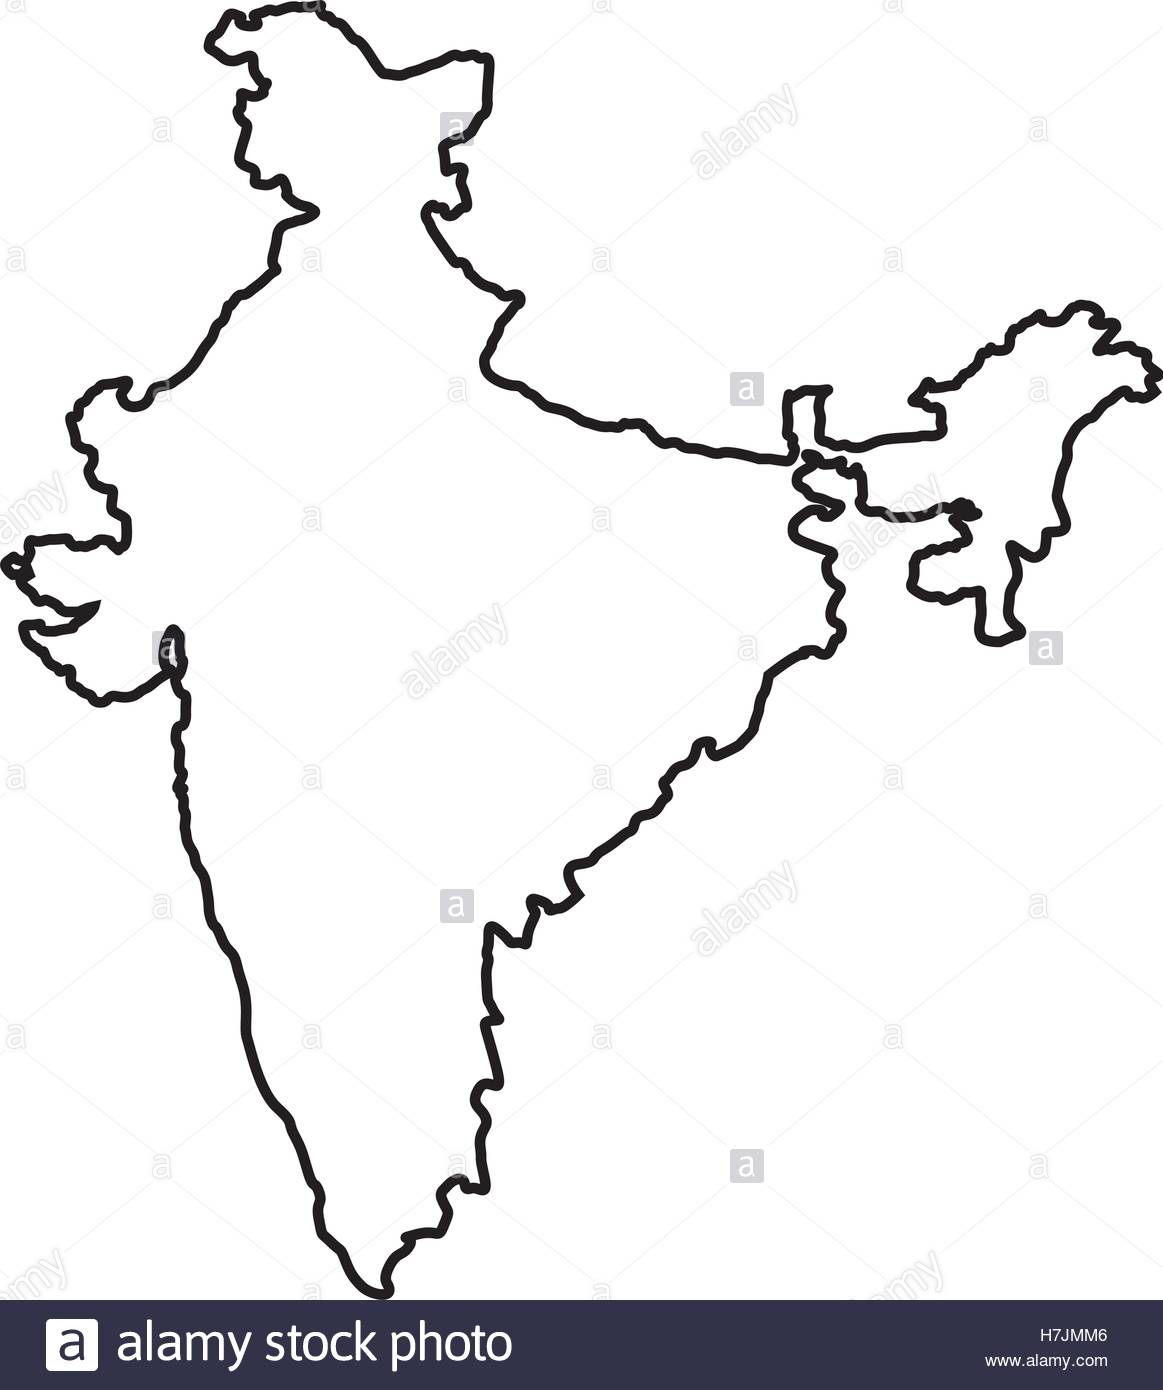 1163x1390 Silhouette Of Republic Of India Country Map Icon Over White Stock